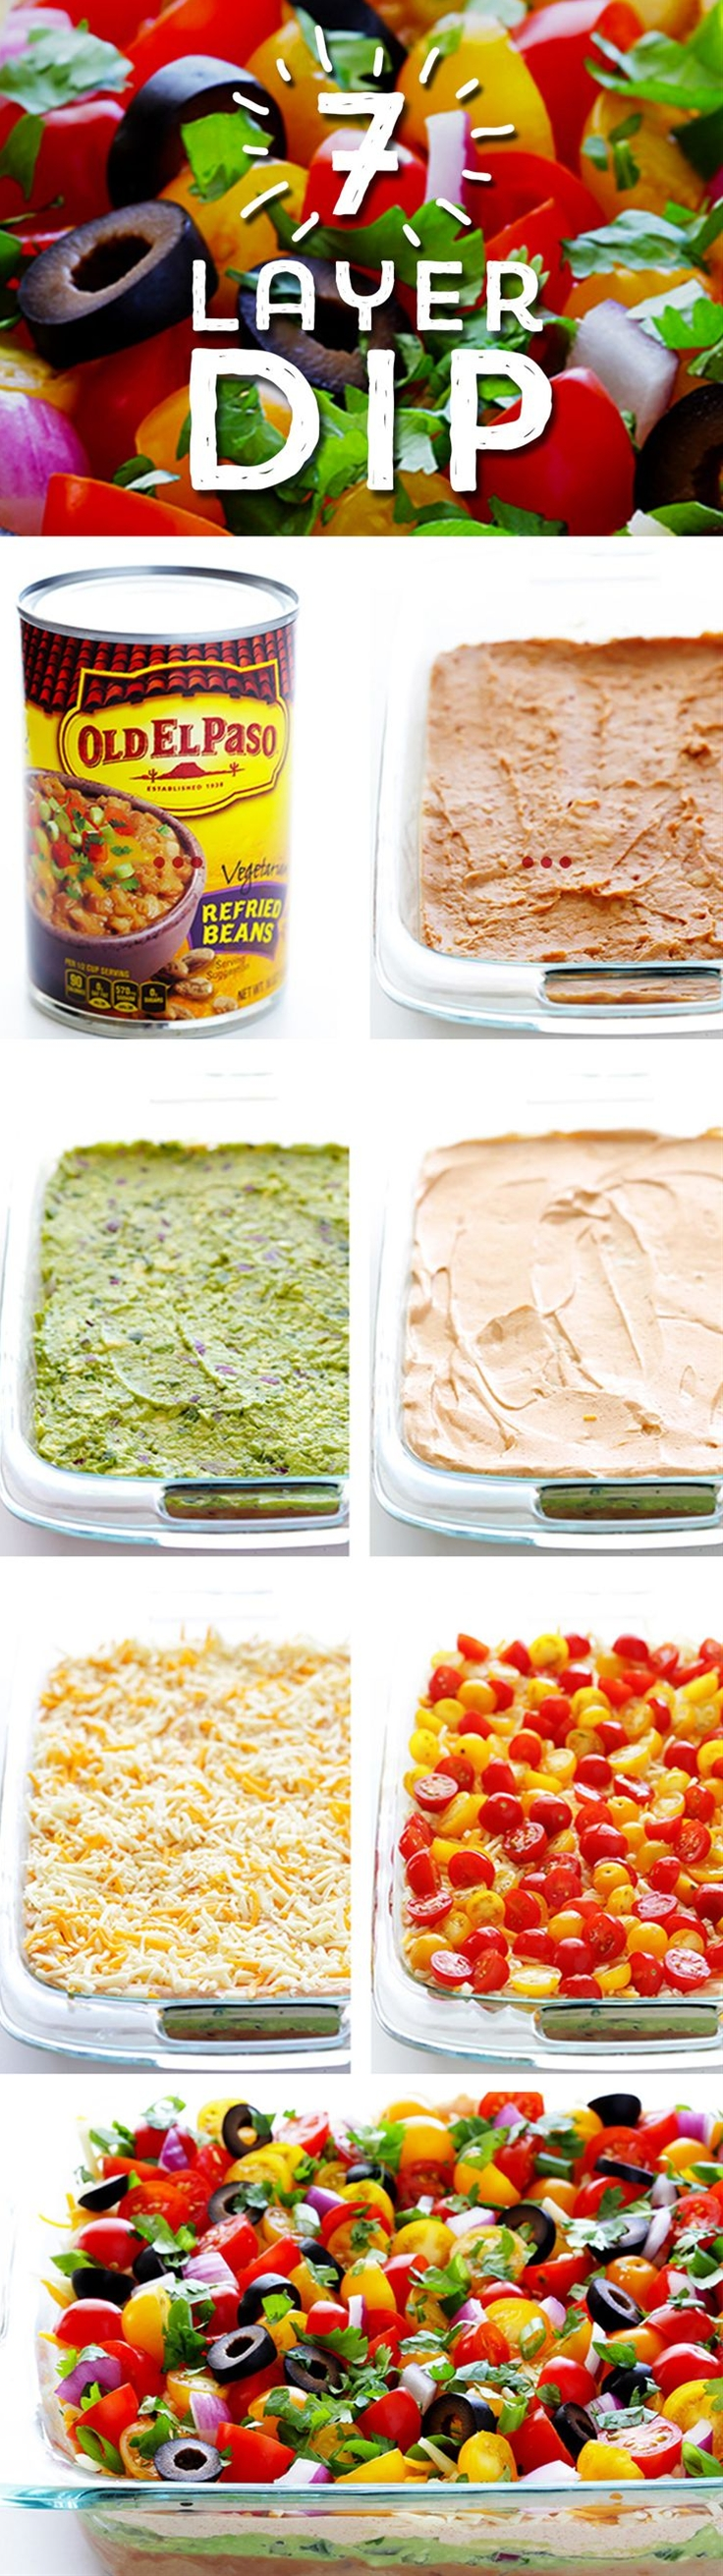 Need a delicious dish to share? This Colorful 7 Layer Dip is sure to be a hit! Start with Old El Paso™ Refried Beans, and pile on layer after layer of fresh, colorful ingredients... and voila! You have a dish perfect for sharing in 25 minutes!\n\n INGREDIENTS\n  1 (16-ounce) containersour cream (2 cups)\n ¼ cup (1 packet)Old El Paso™ taco seasoning\n 2 (15-ounce) cansOld El Paso™ refried beans\n 3 cupsguacamole\n 2 cupsshredded Mexican cheese\n 2 cupscherry or grape tomatoes, halved\n ½ cupsliced (drained) black olives\n ⅓ cupdiced red onion\n ¼ cupthinly-sliced green onions\n ¼ cupfresh roughly-chopped cilantro leaves